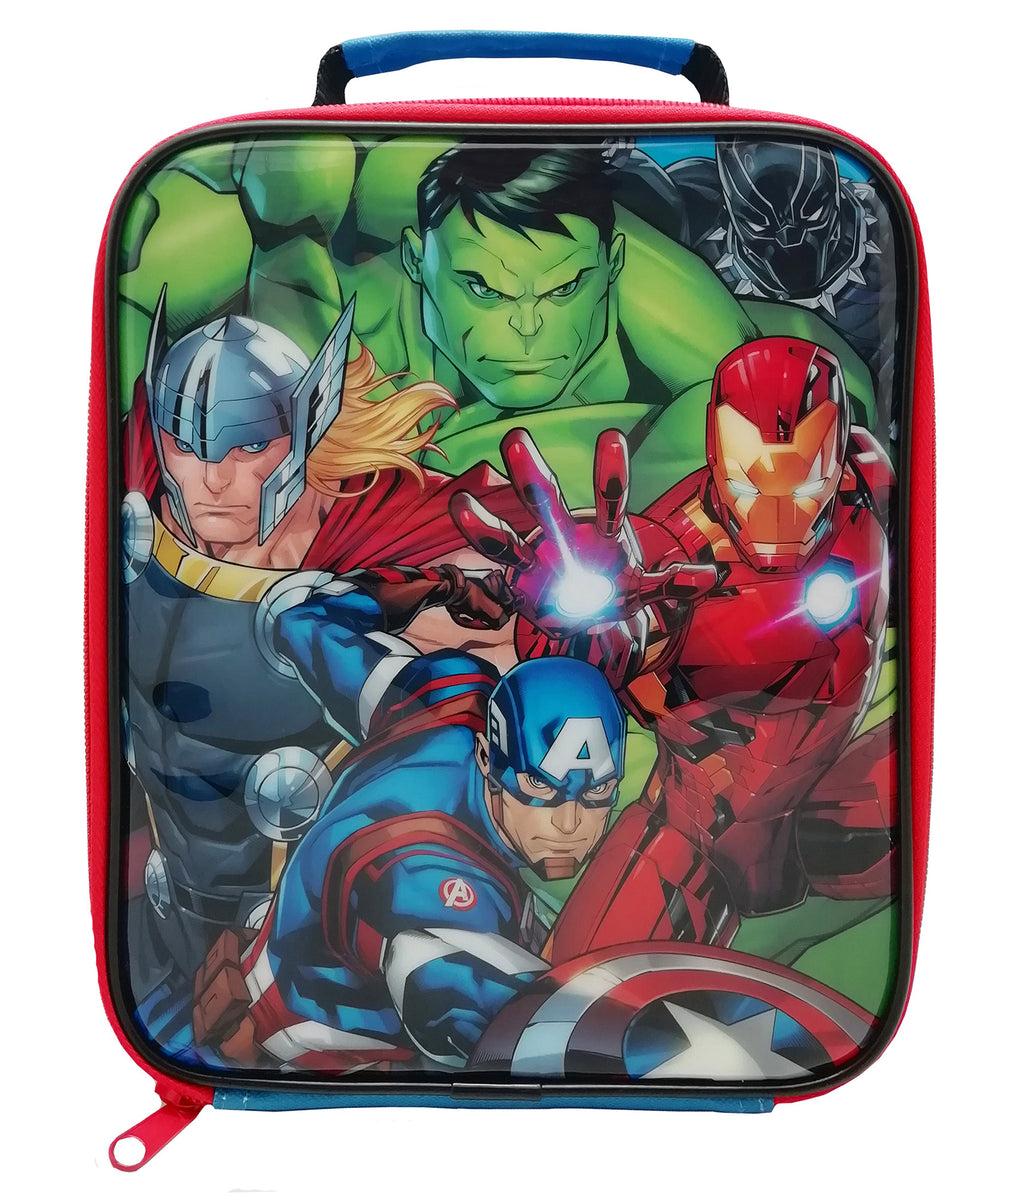 Marvel Avengers Classic Lunch Bag and Bottle